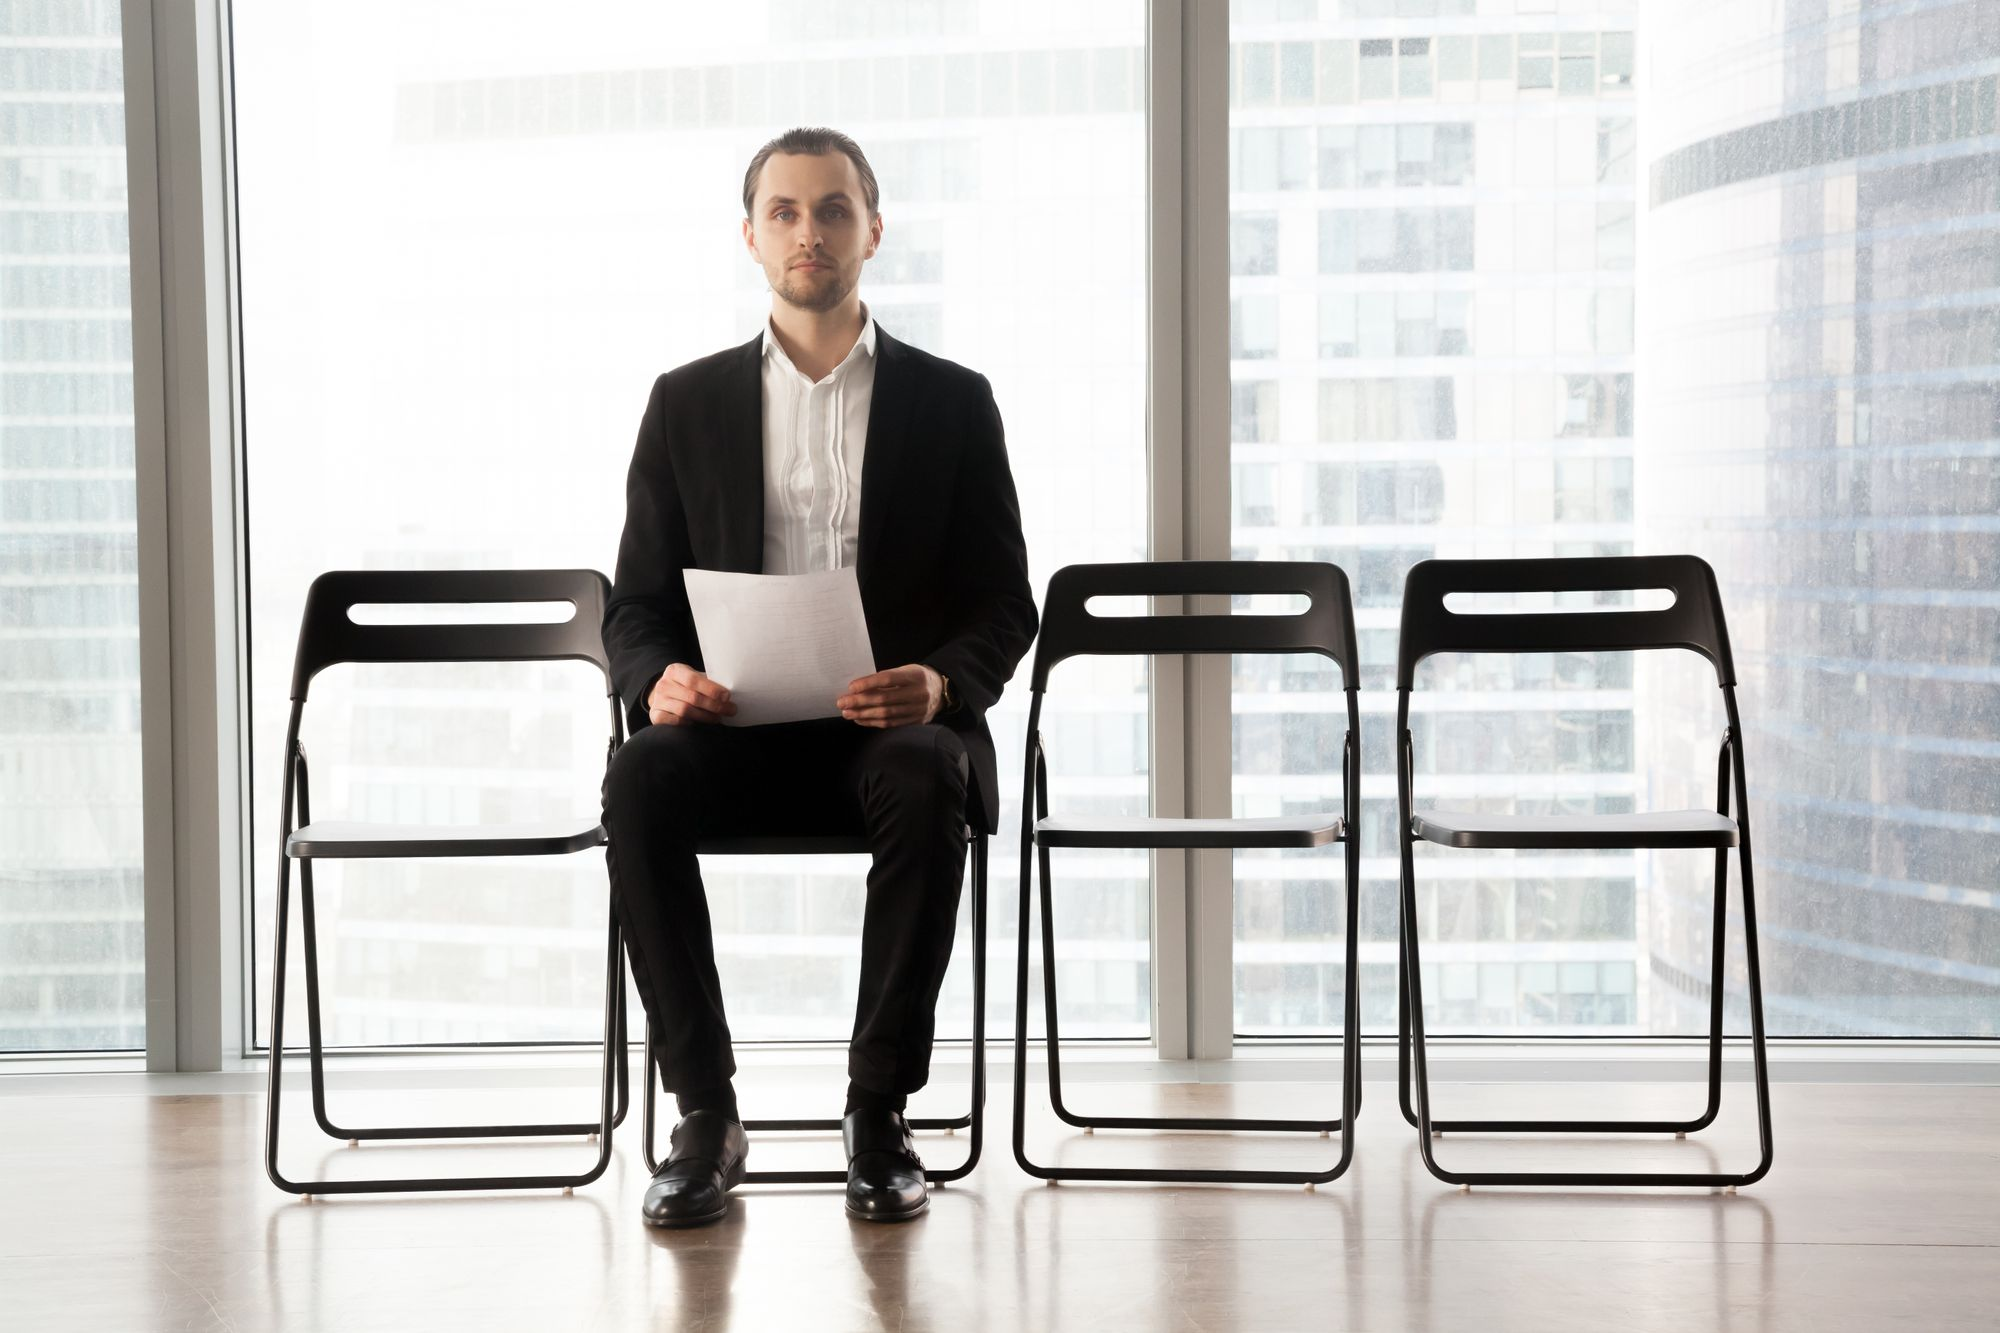 10 Common questions asked in an Interview